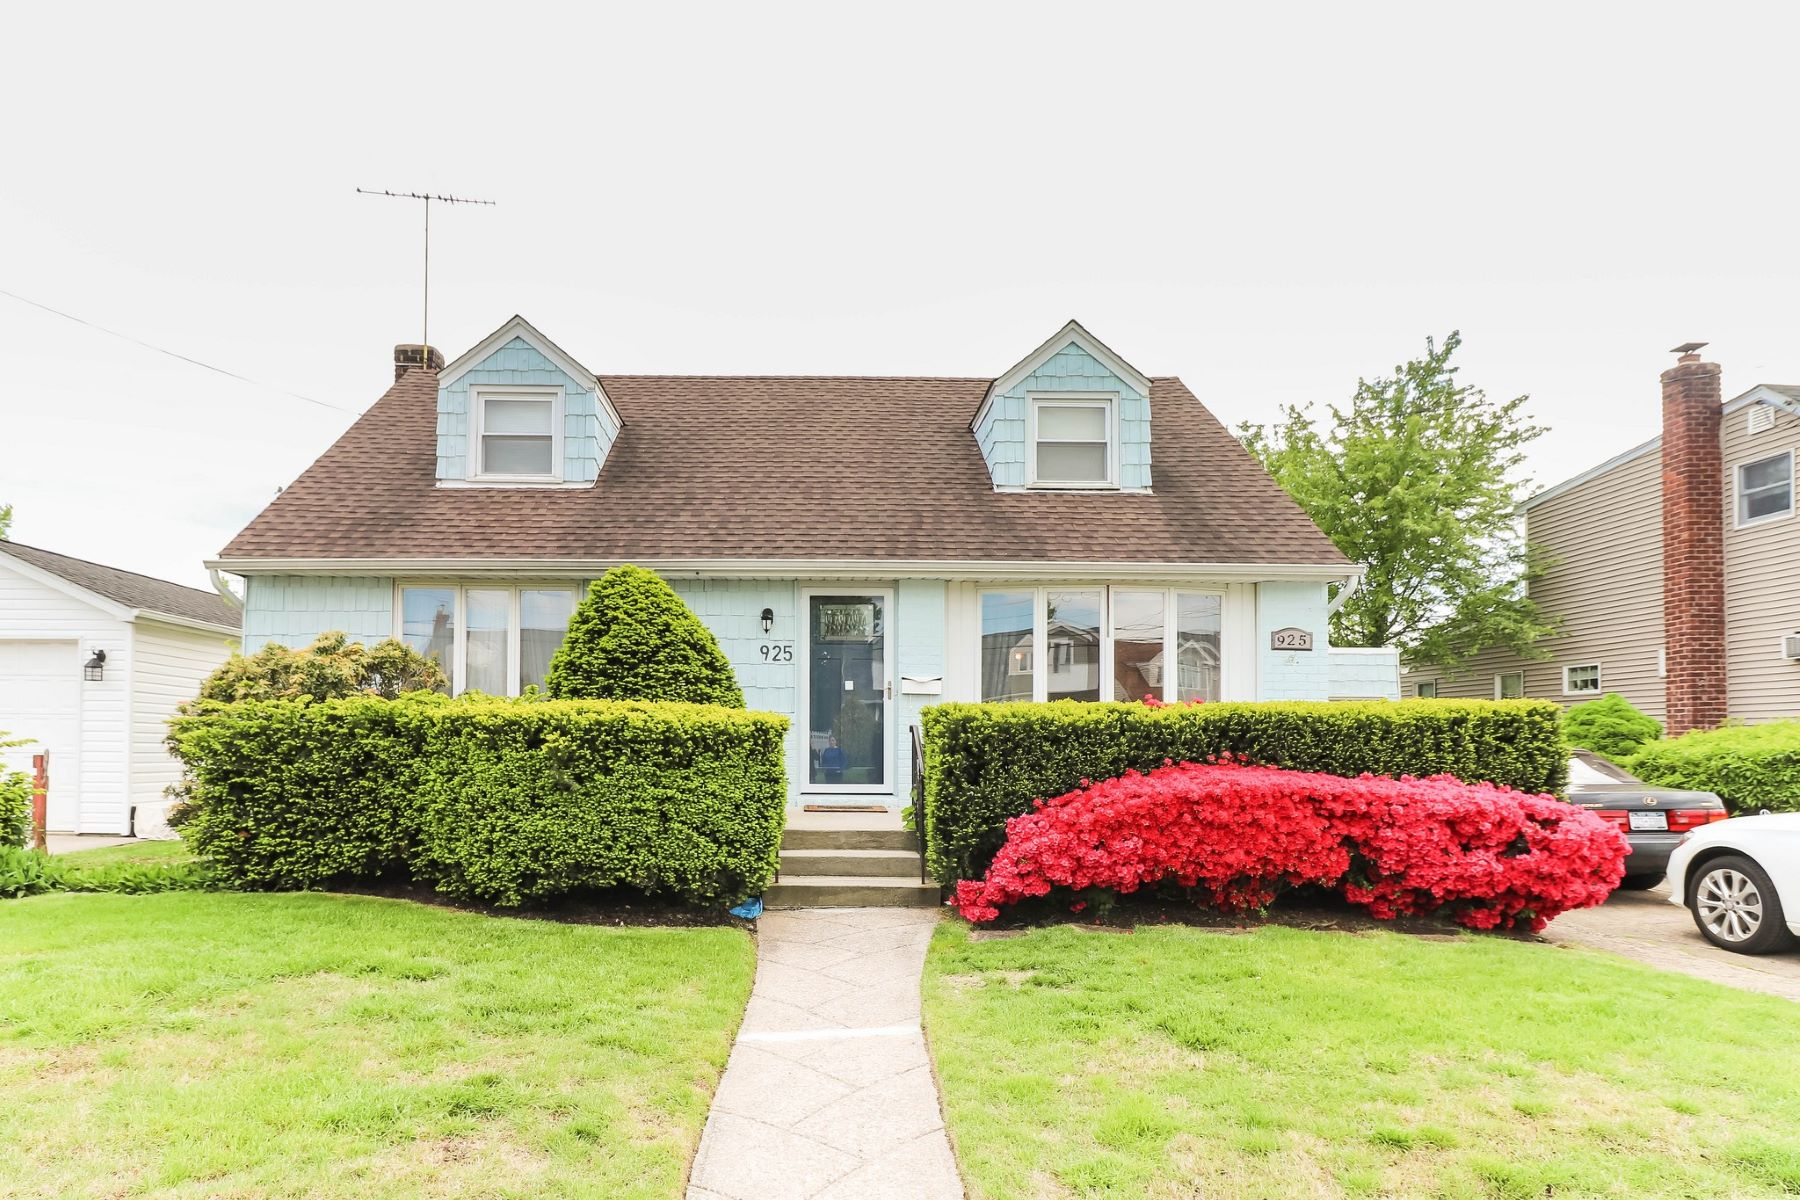 Single Family Homes for Sale at Franklin Square 925 Cherry Ln Franklin Square, New York 11010 United States